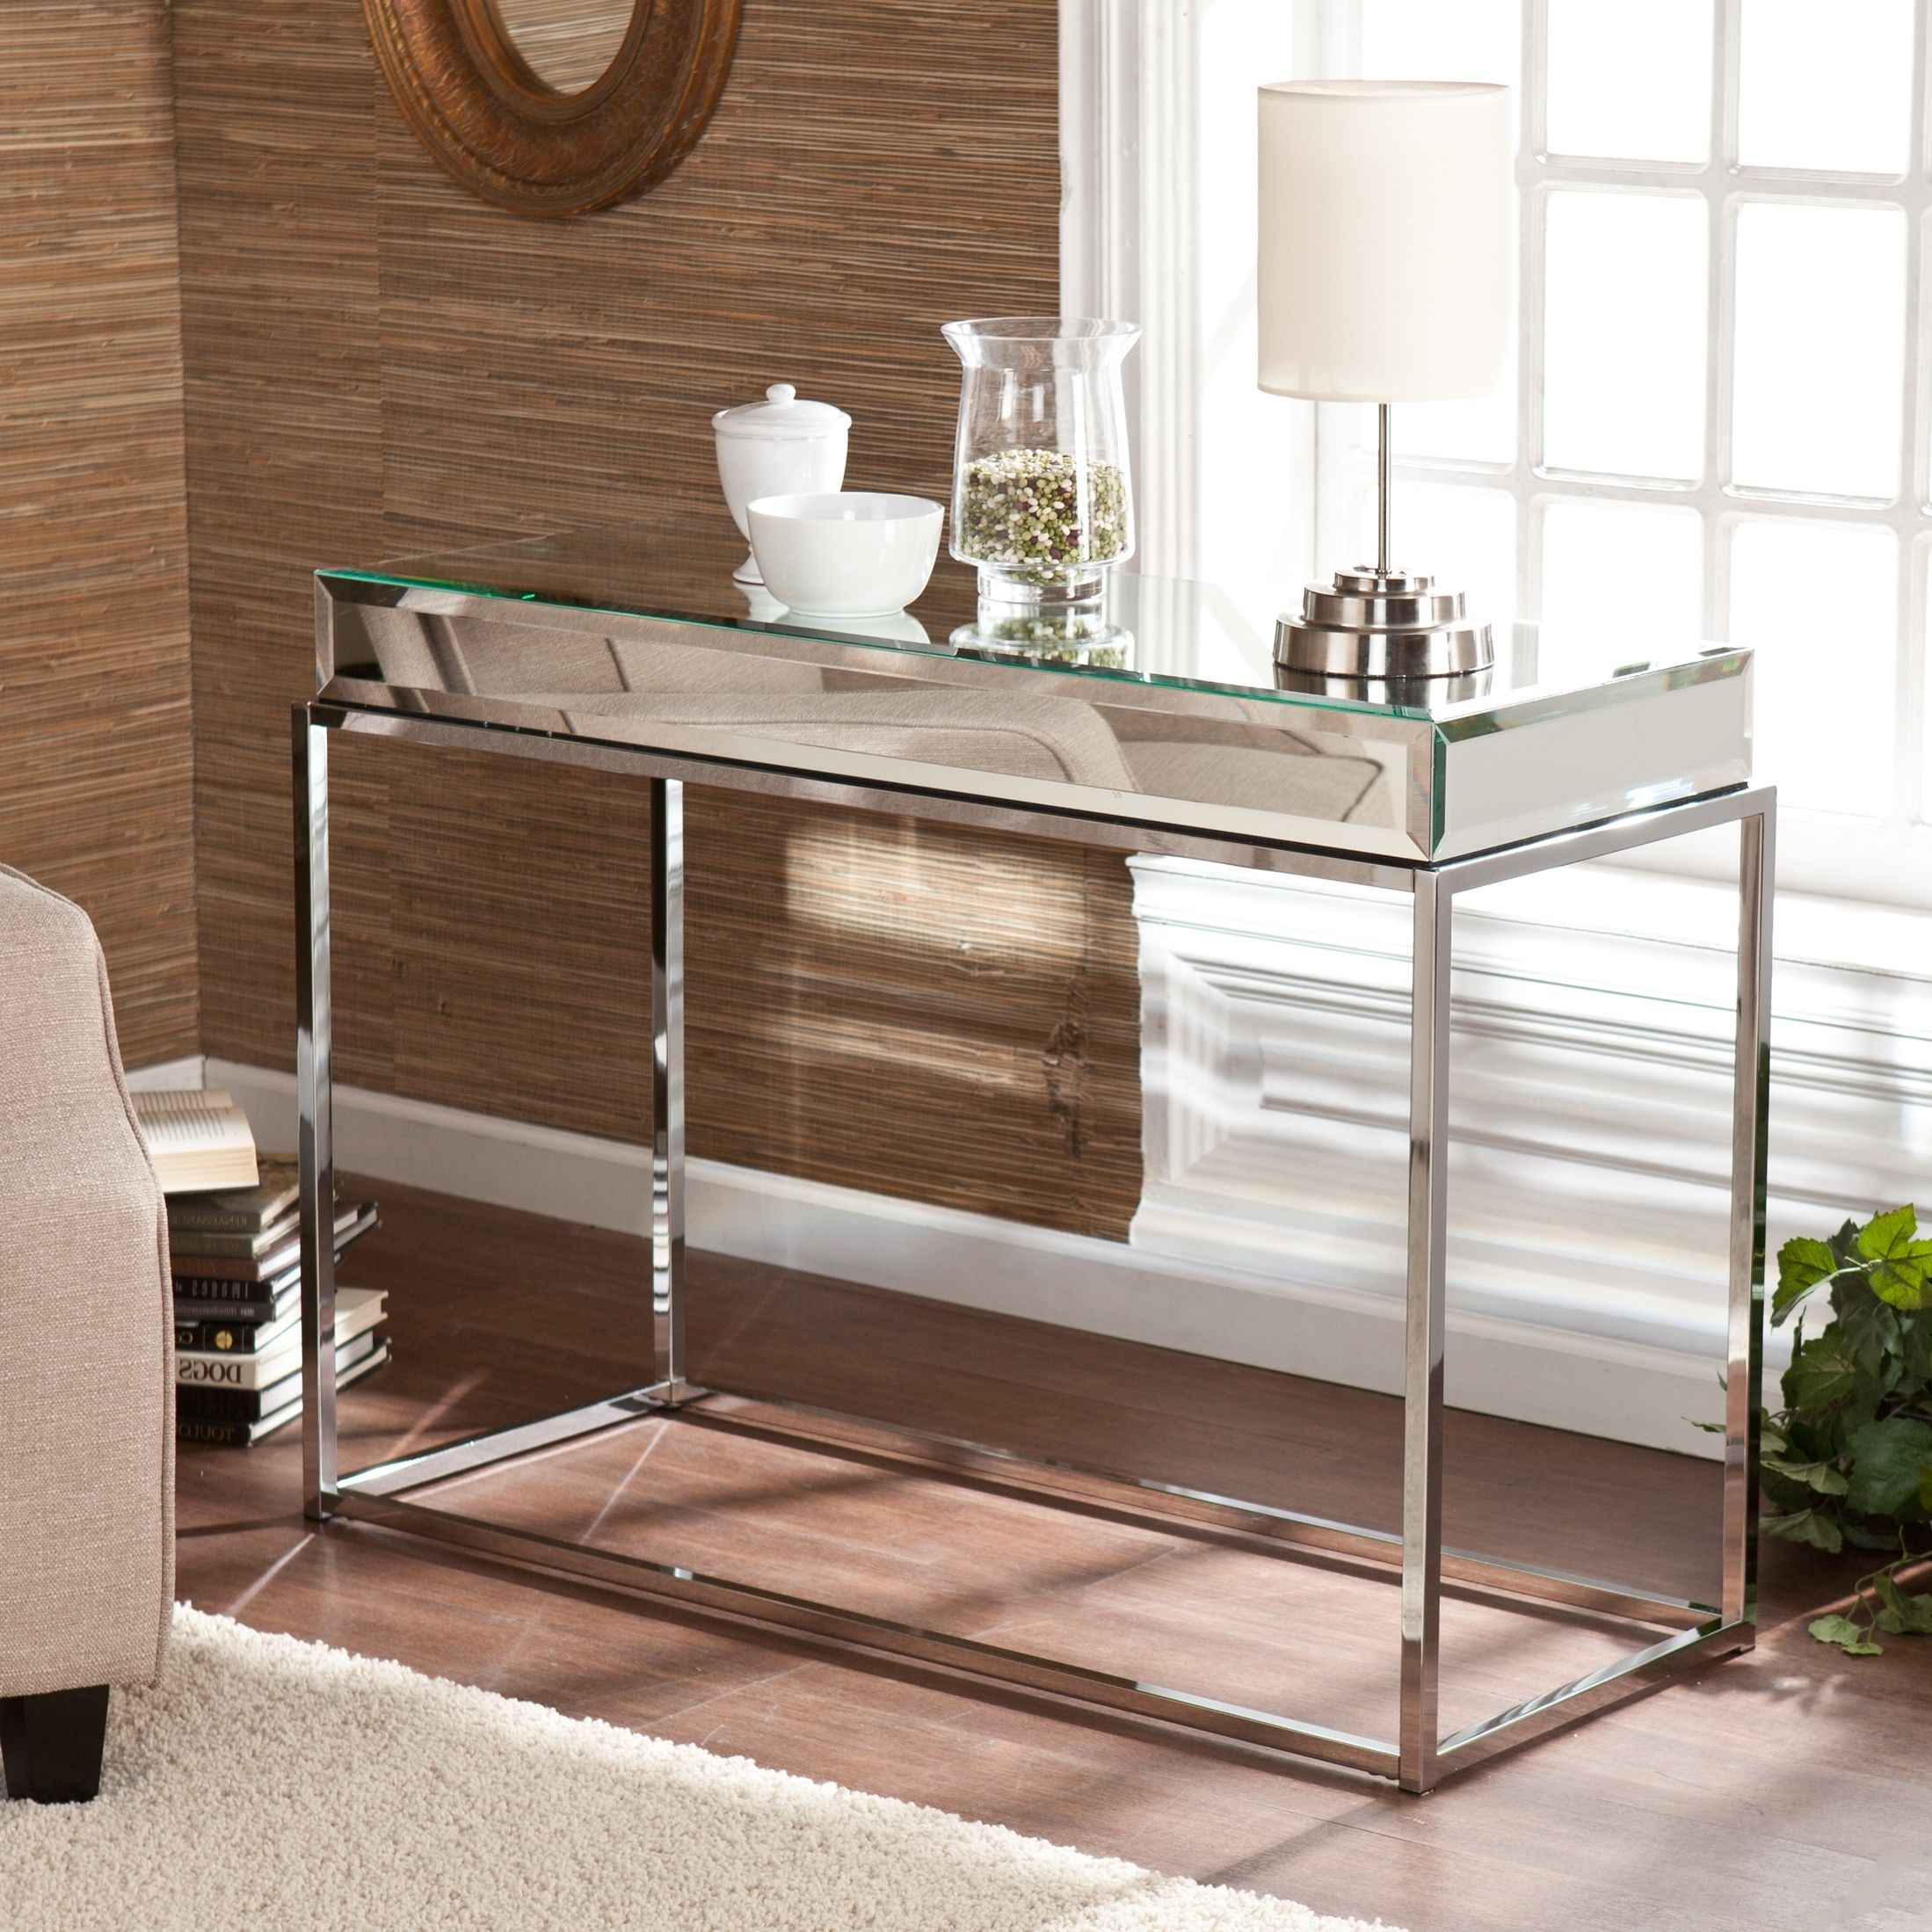 This Upton Home Mirrored Console Sofa Table Adds Contemporary Glam To Any Room The Mirrored T Mirrored Console Table Contemporary Console Table Console Table